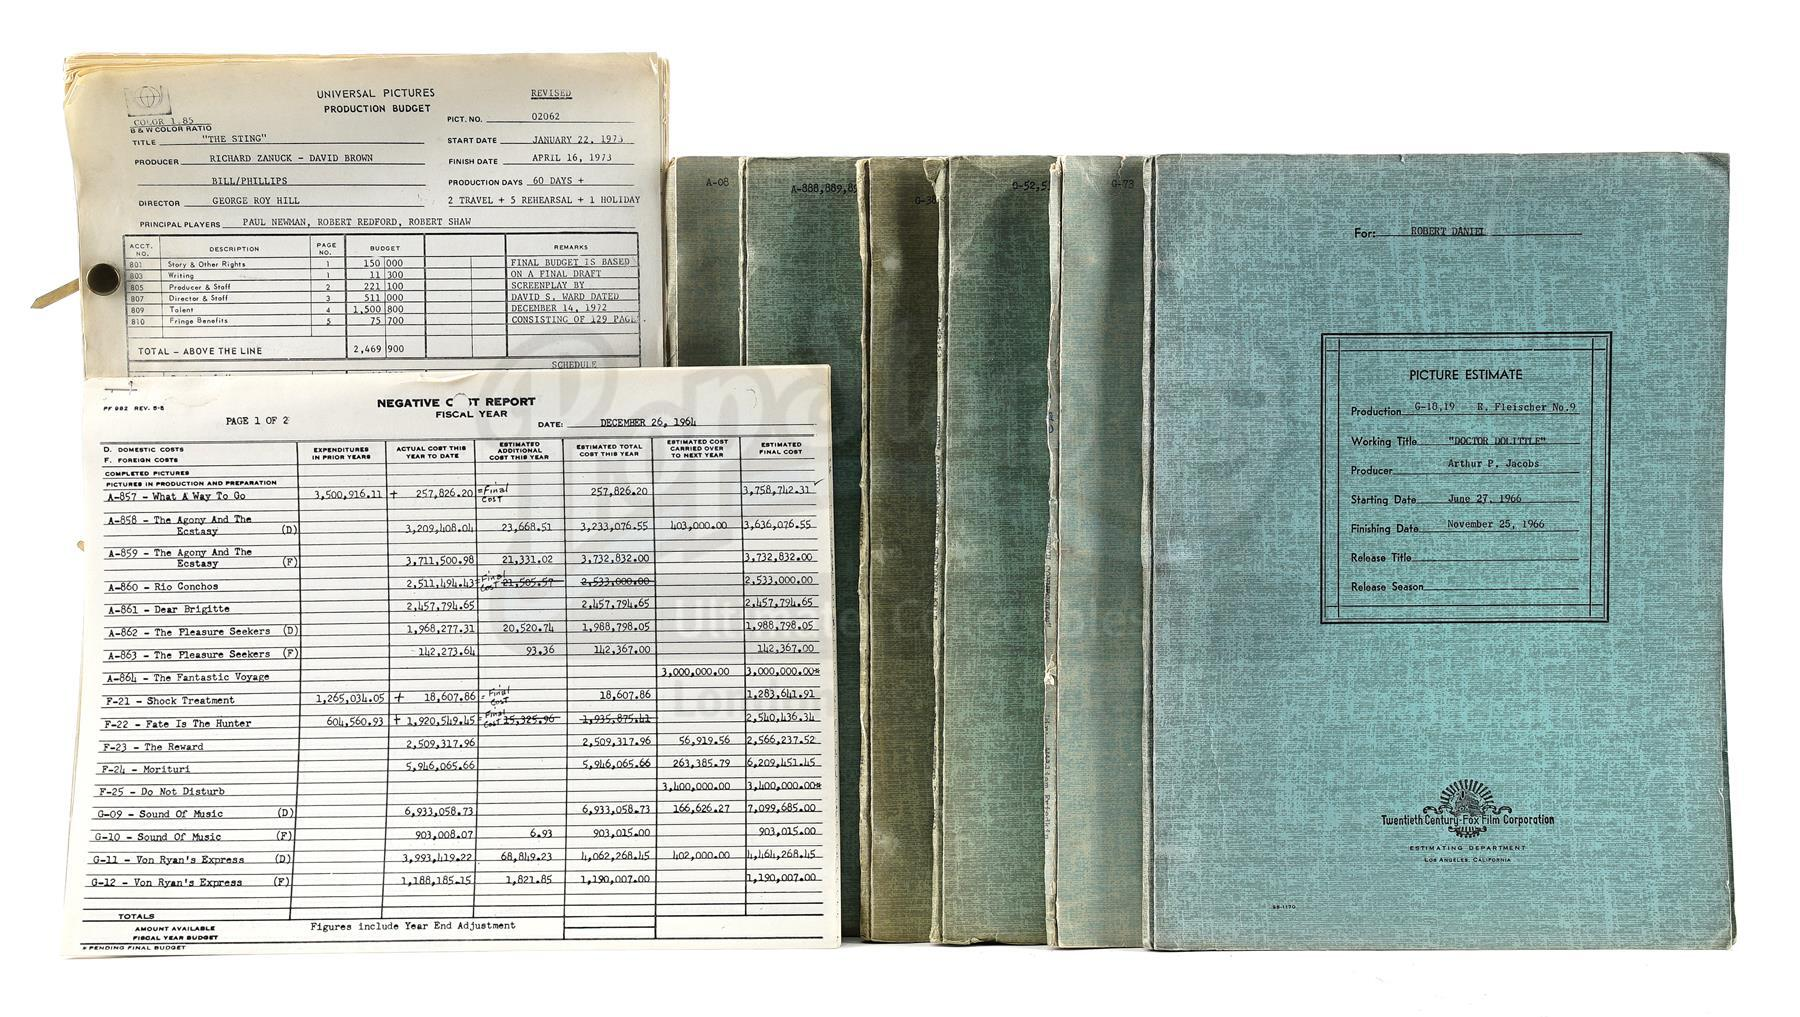 Lot # 682: FORREST GUMP (1994) - Original 20th Century Fox Approval Budgets for Classic Titles Inclu